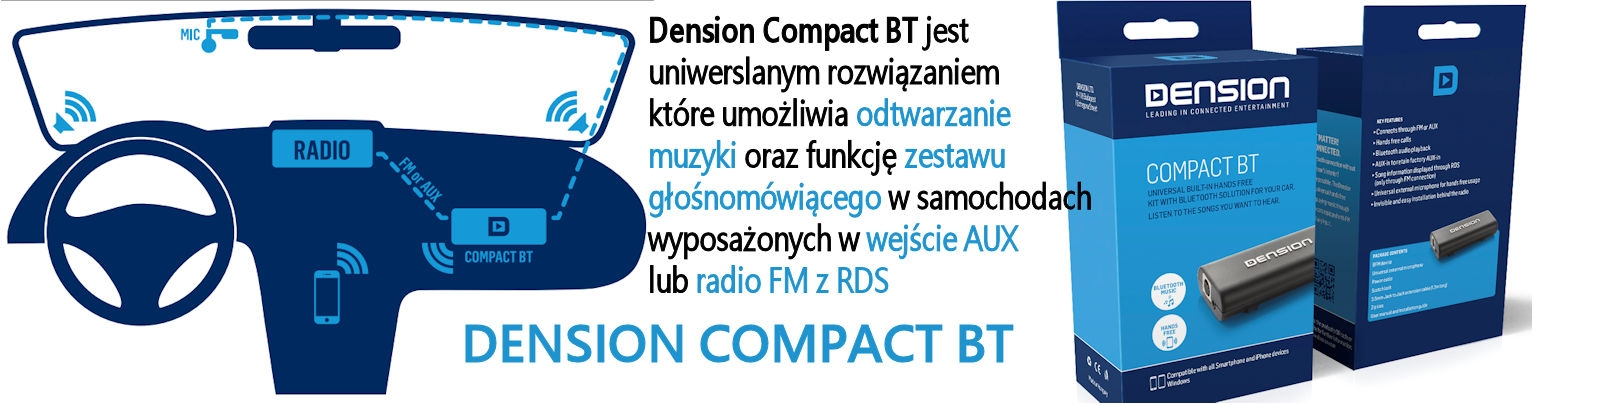 DENSION COMPACT BT